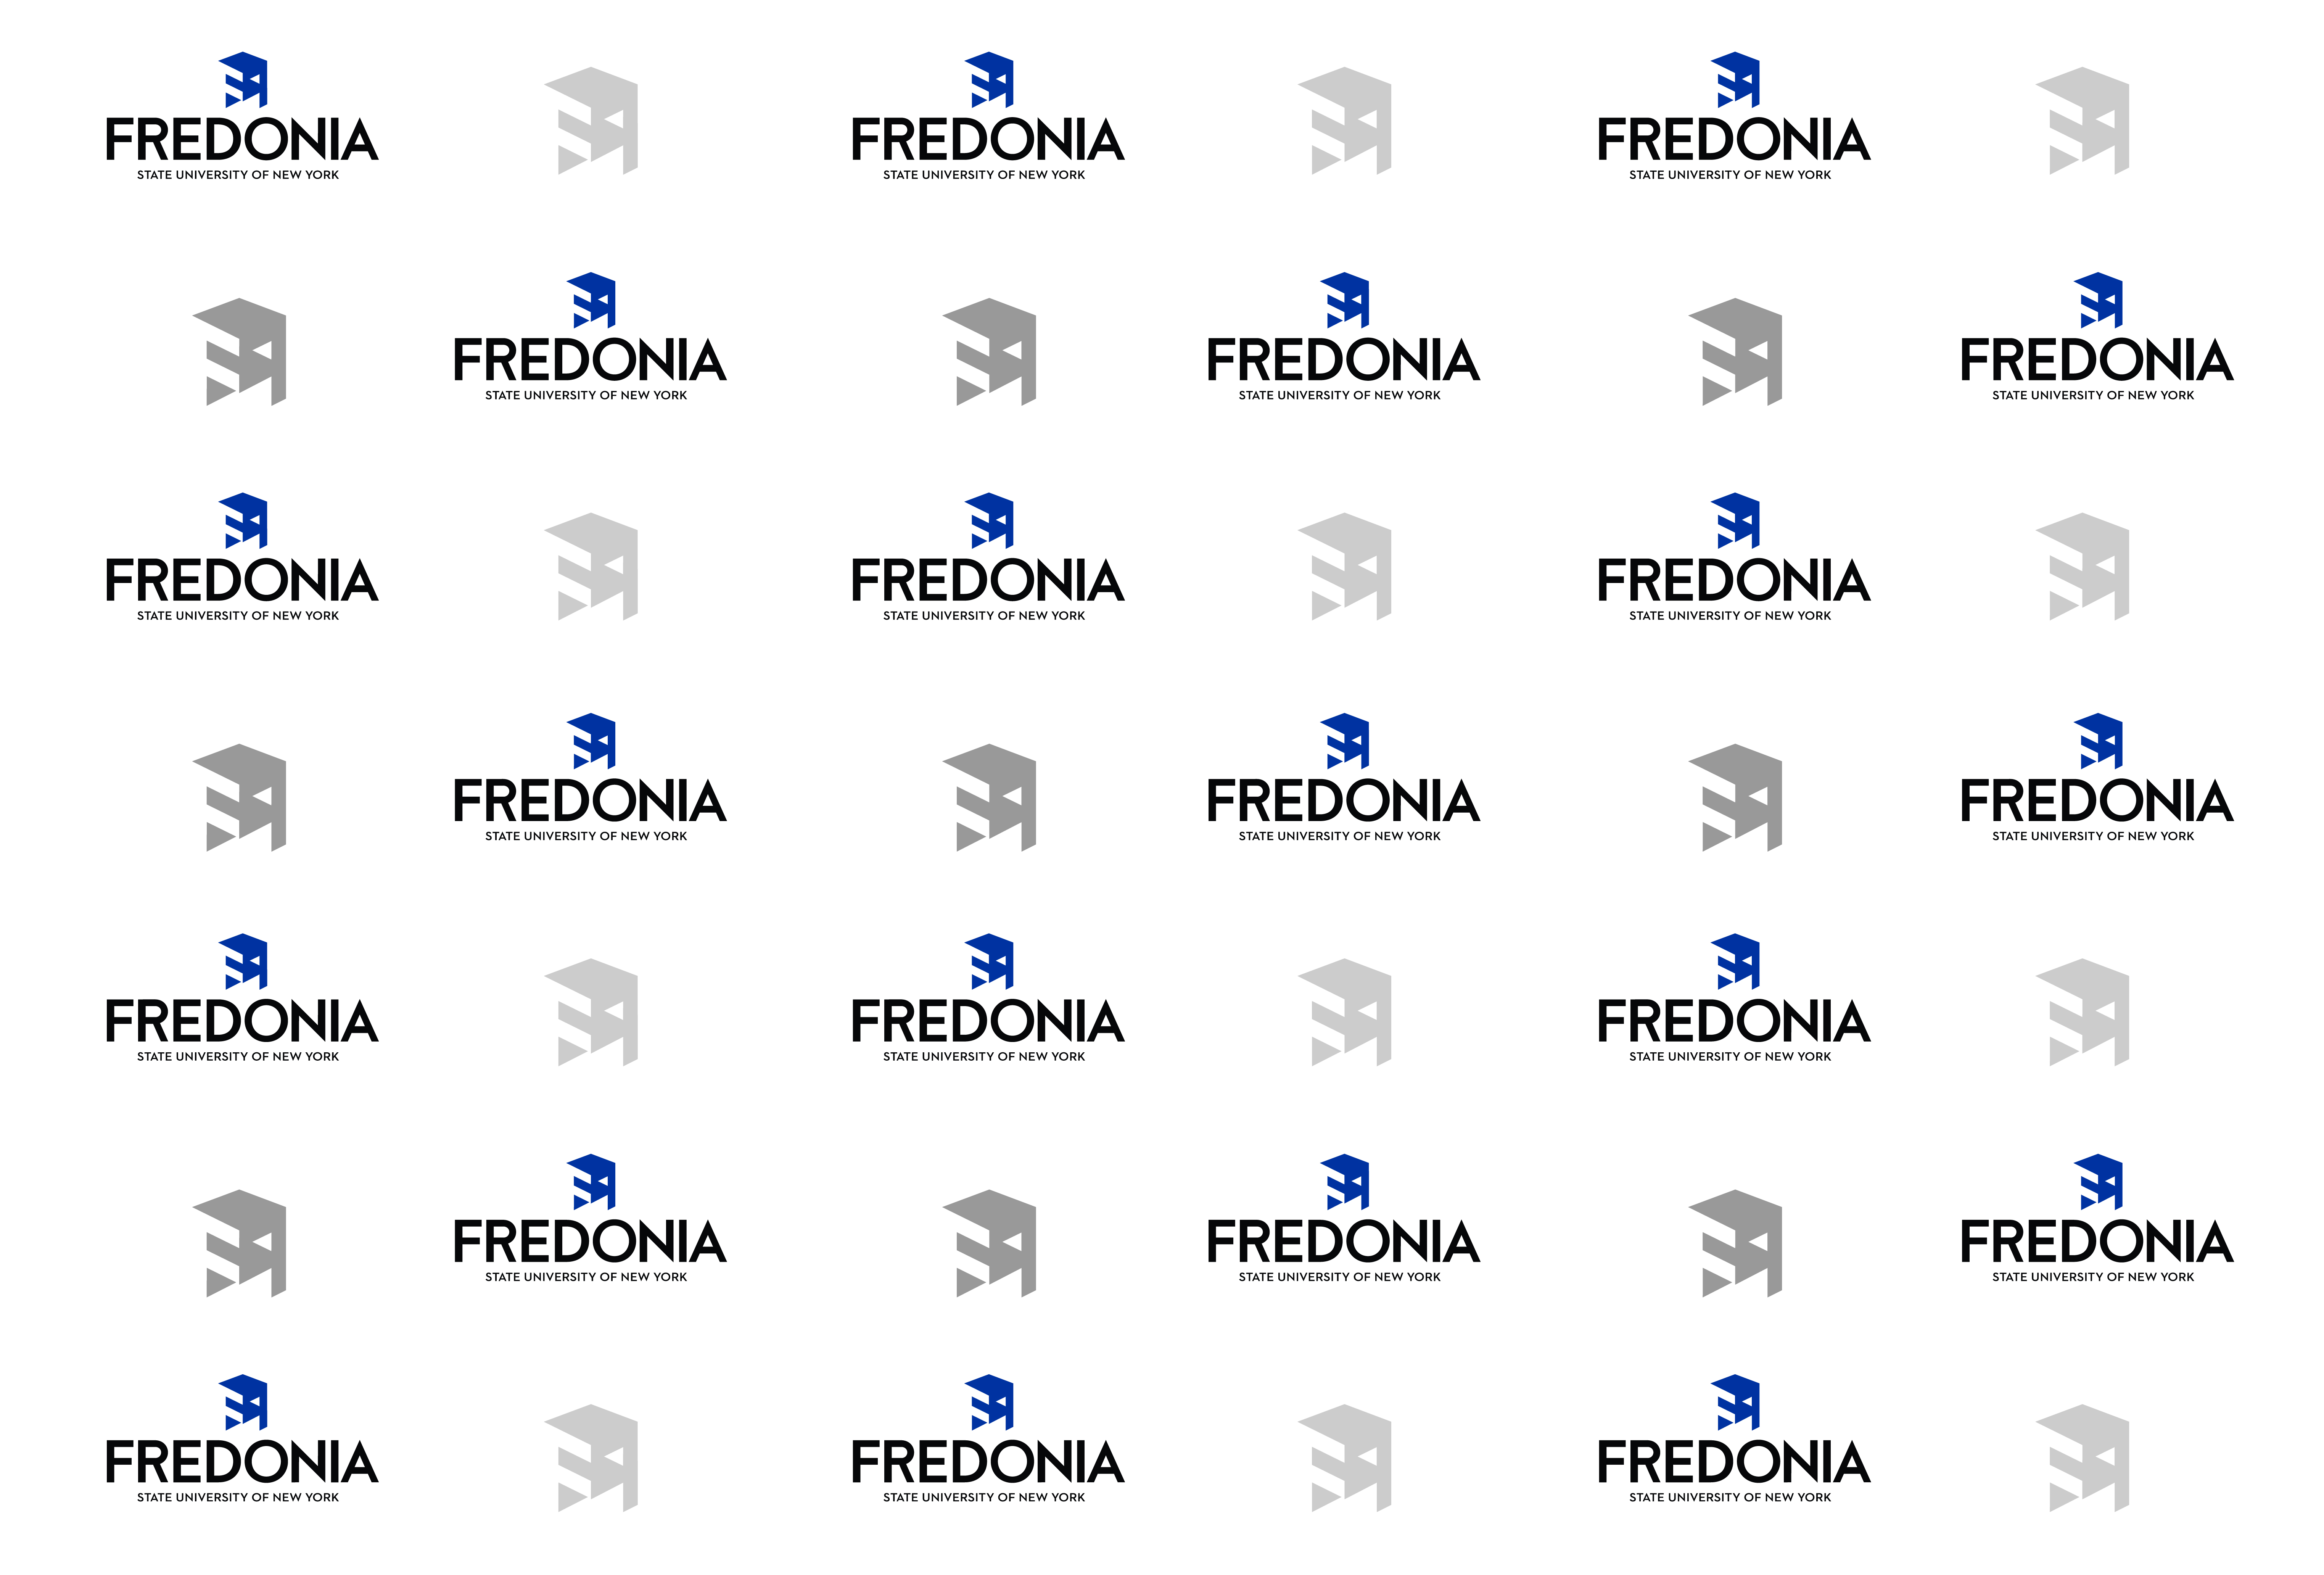 virtual background - Fredonia white